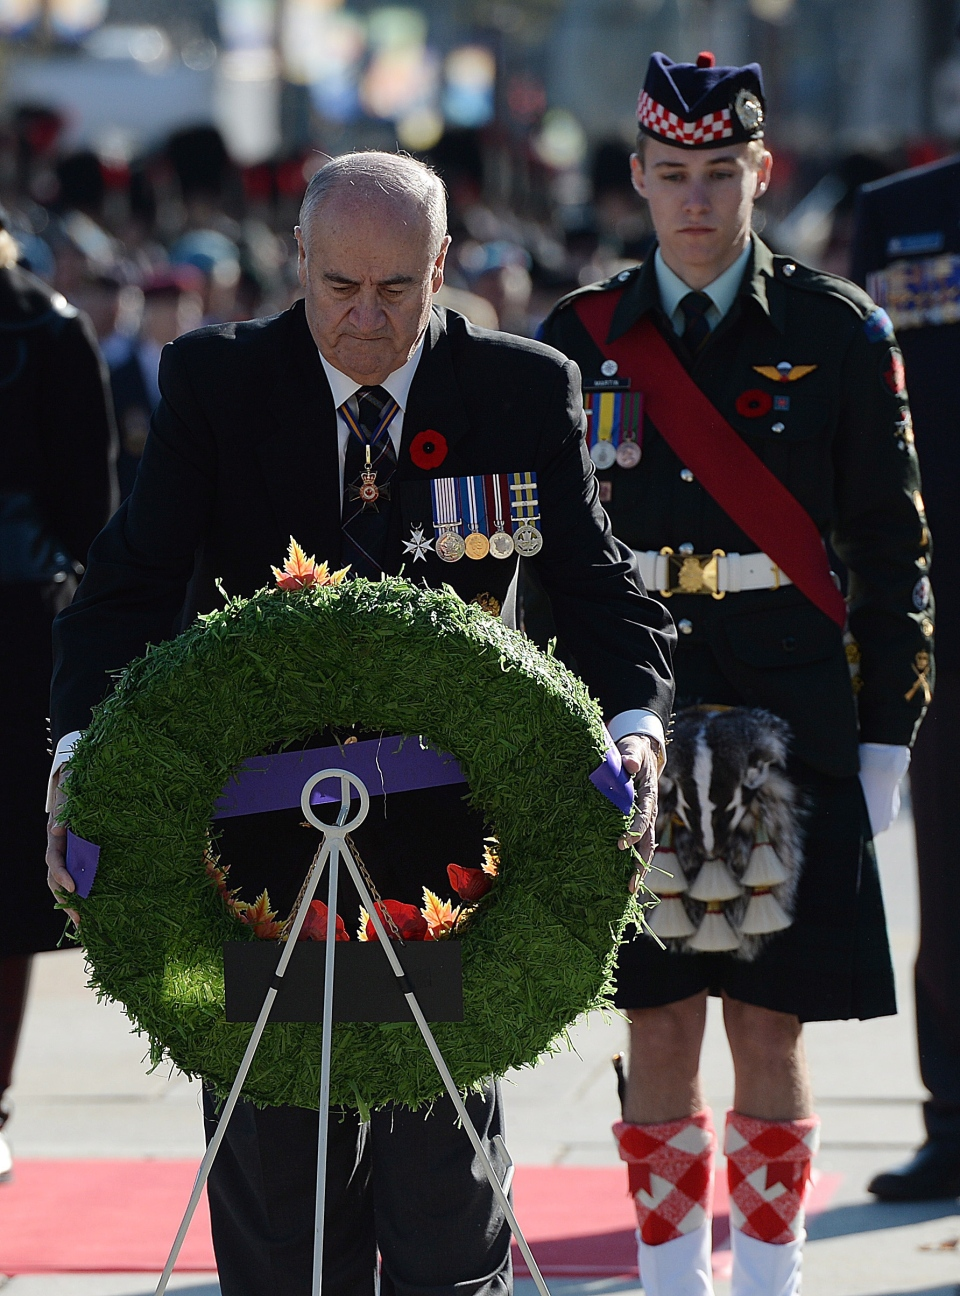 Minister of Veterans Affairs Julian Fantino places a wreath during Remembrance Day ceremonies at the National War Memorial in Ottawa on Tuesday, November 11, 2014. (THE CANADIAN PRESS/Sean Kilpatrick)